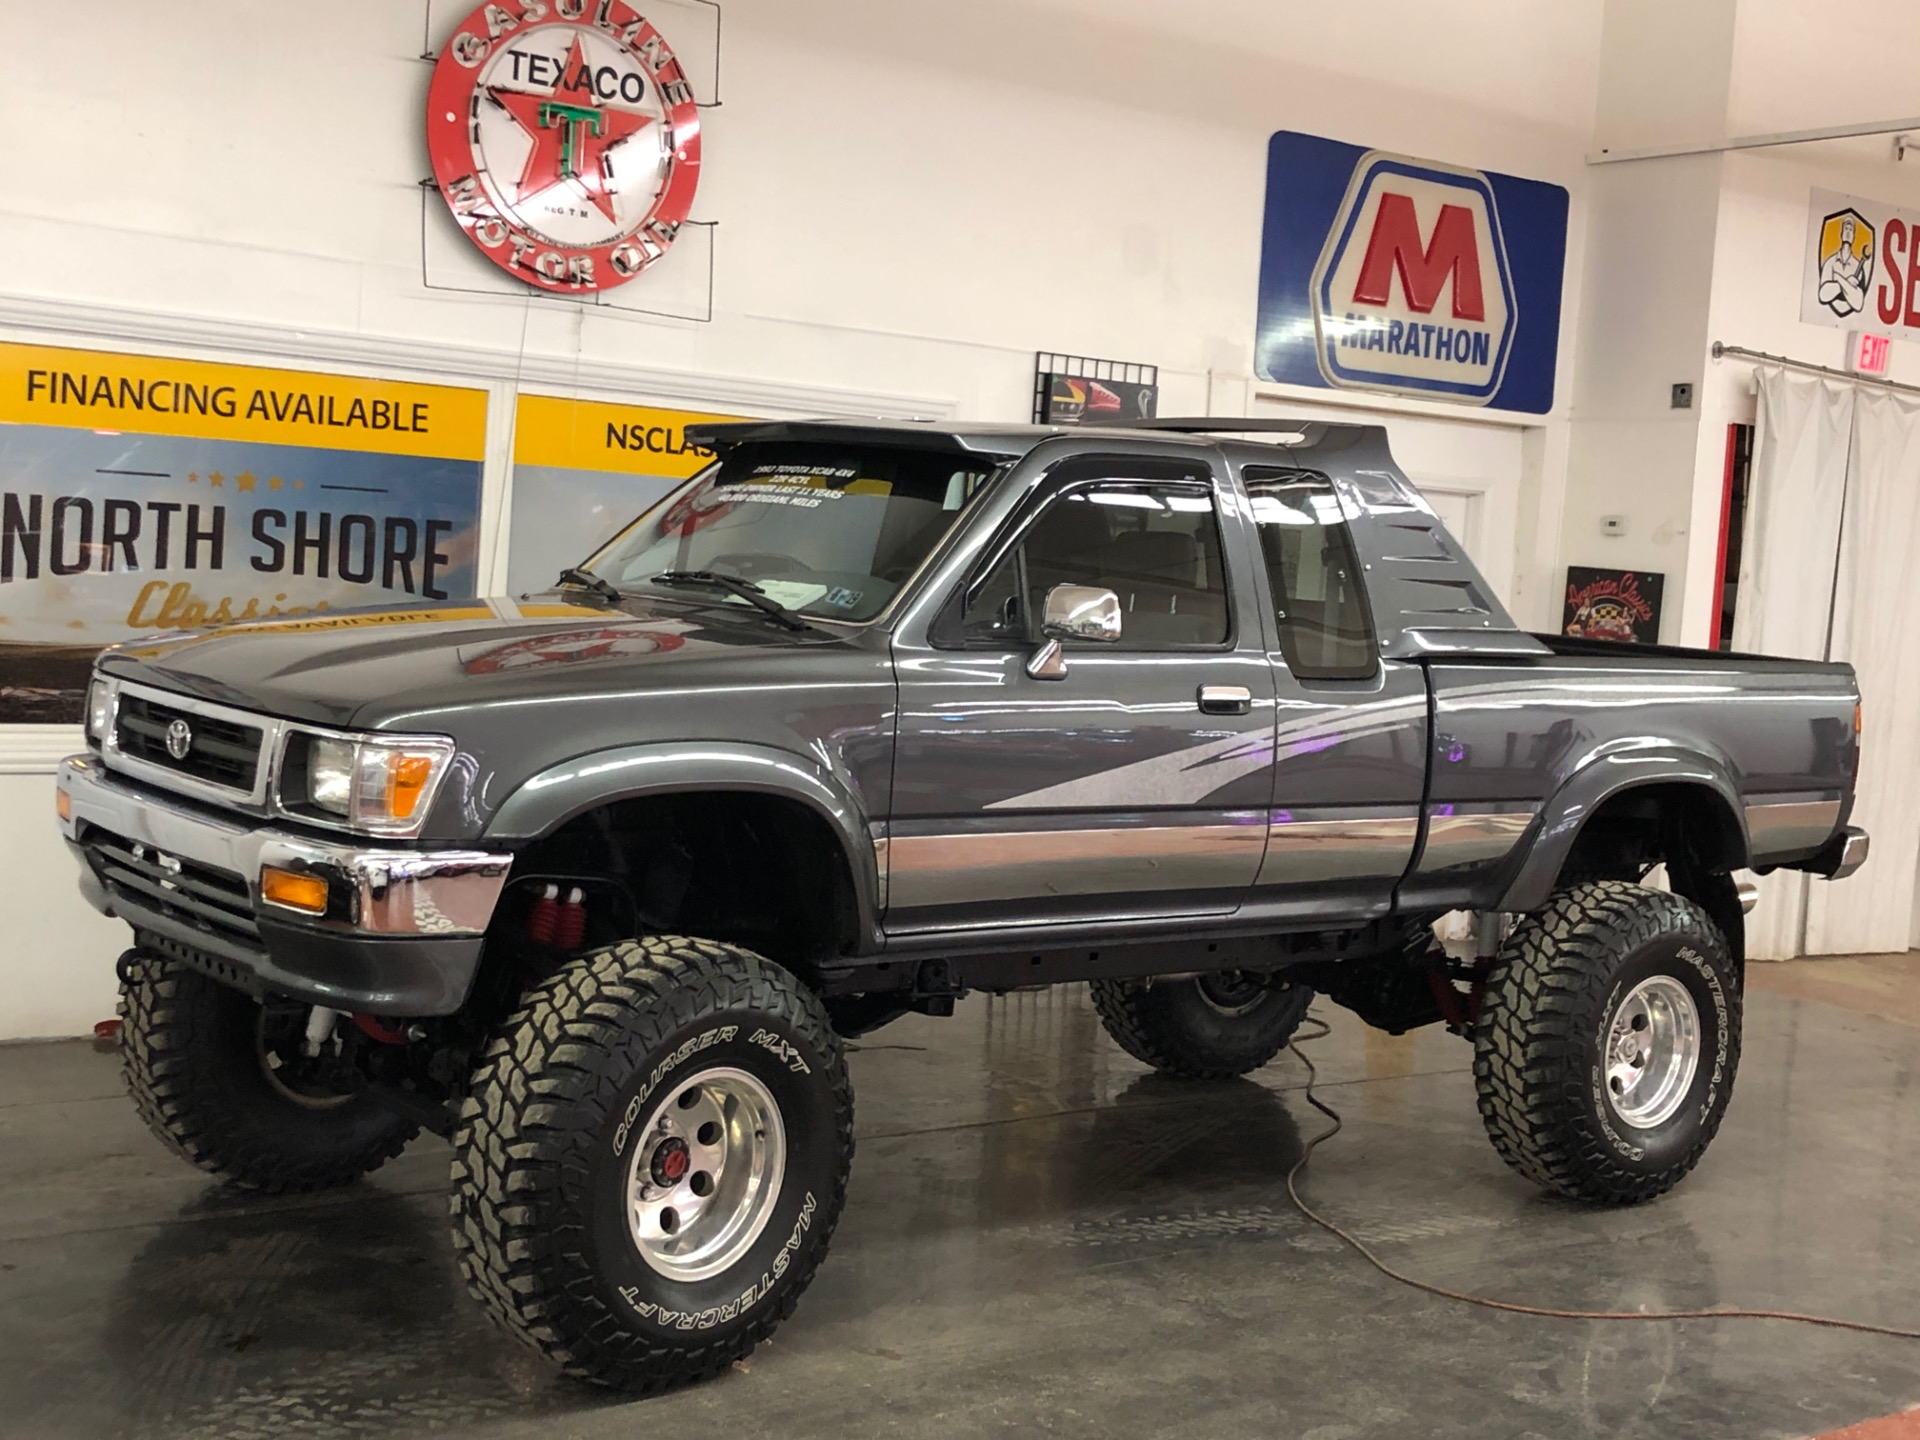 1993 Toyota Pickup 4x4 Lifted 40 250 Actual Miles New Tires Video Stock 19322nsc For Sale Near Mundelein Il Il Toyota Dealer